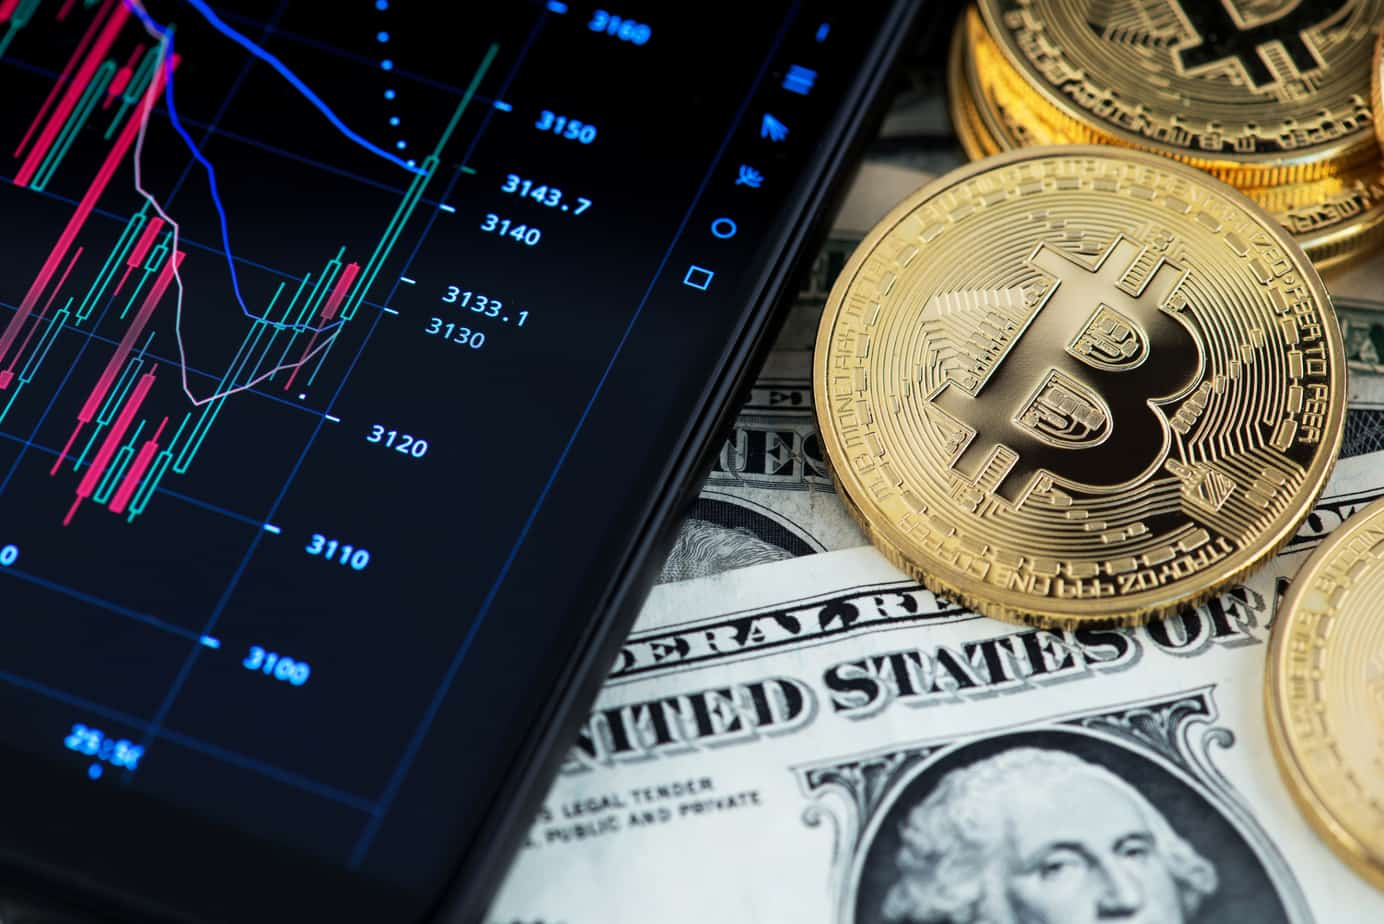 bitcoin cryptocurrency and banknotes of one us dollar next to mobile phone showing candlestick chart 142334515